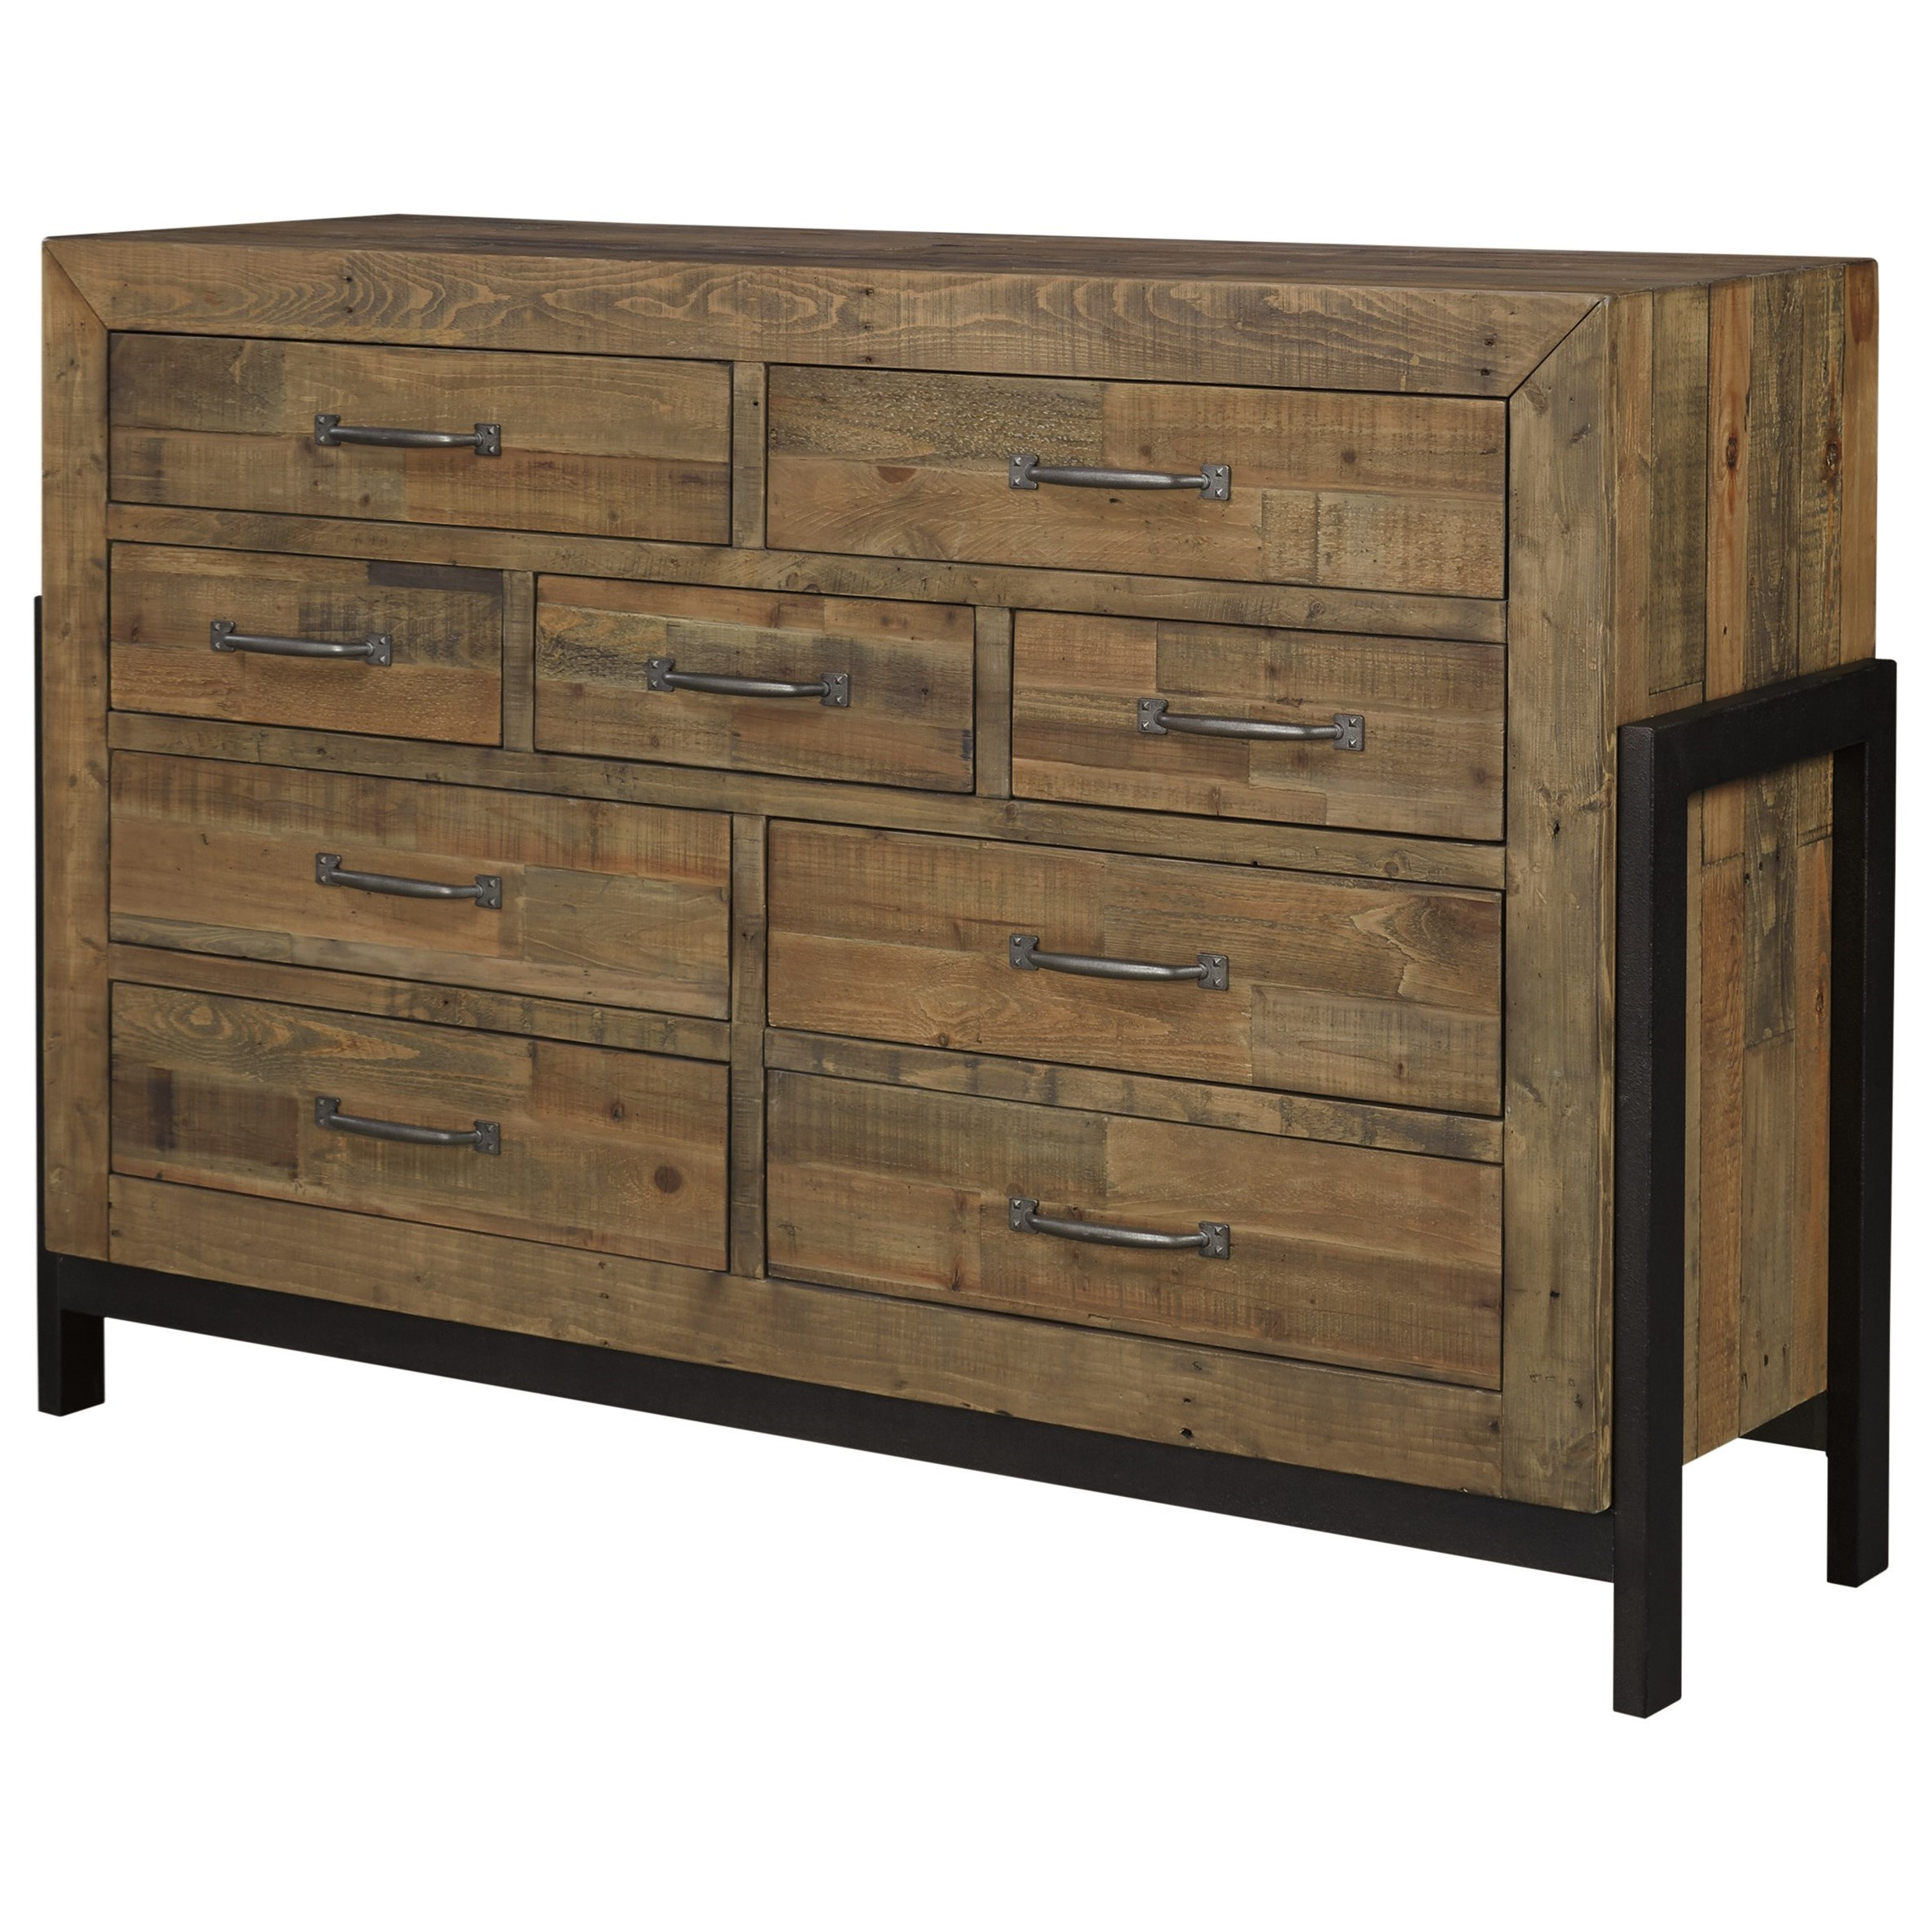 Reclaimed Pine Solid Wood Dresser With Metal Framesignature Regarding Most Up To Date Reclaimed Sideboards With Metal Panel (View 20 of 20)